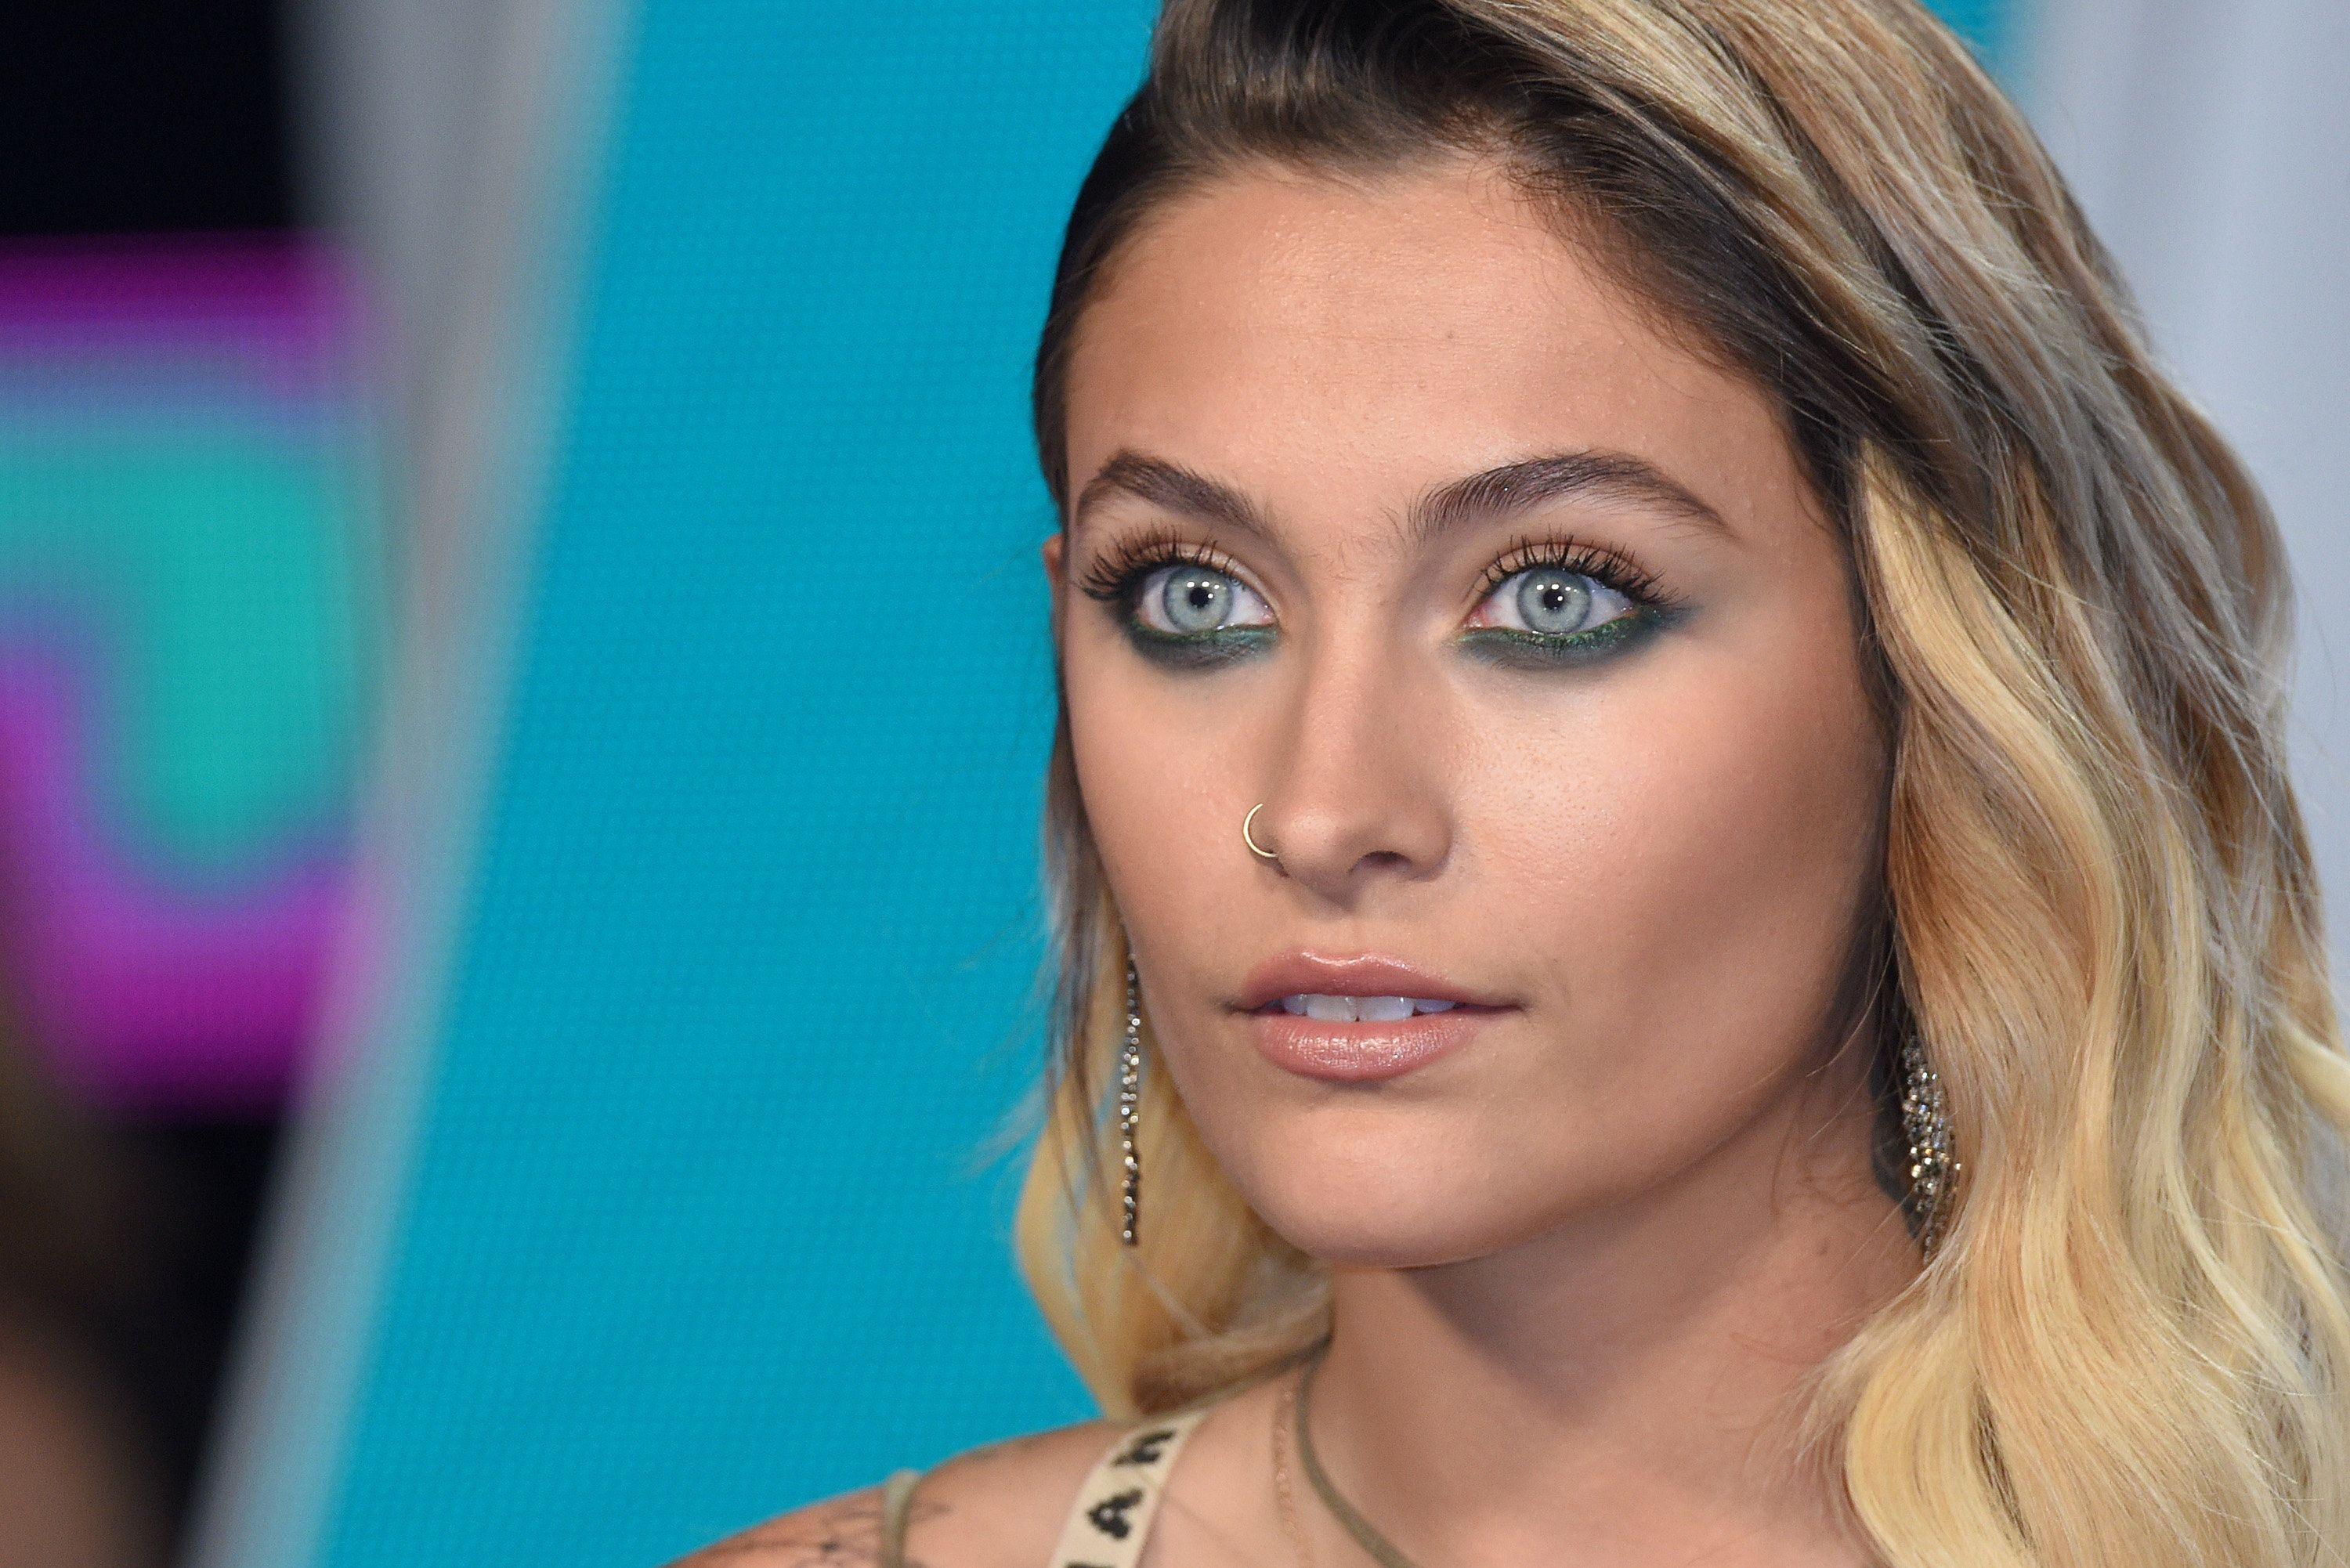 And Paris Jackson unveiled her latest tattoo on Instagram on Saturday